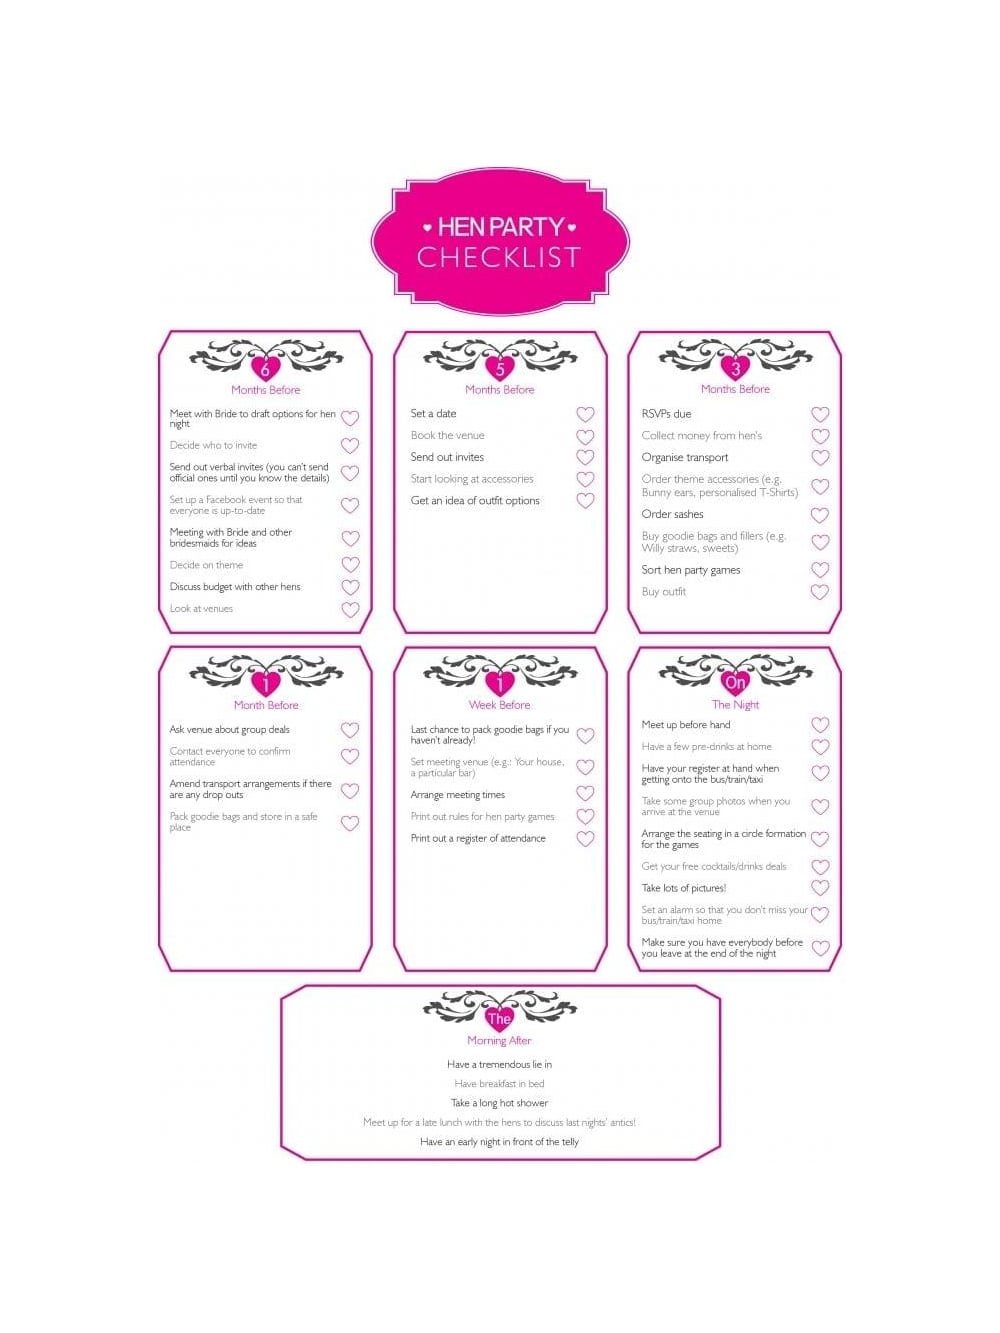 Hen Party Planning | Hen Party Ideas | Hen Party Superstore